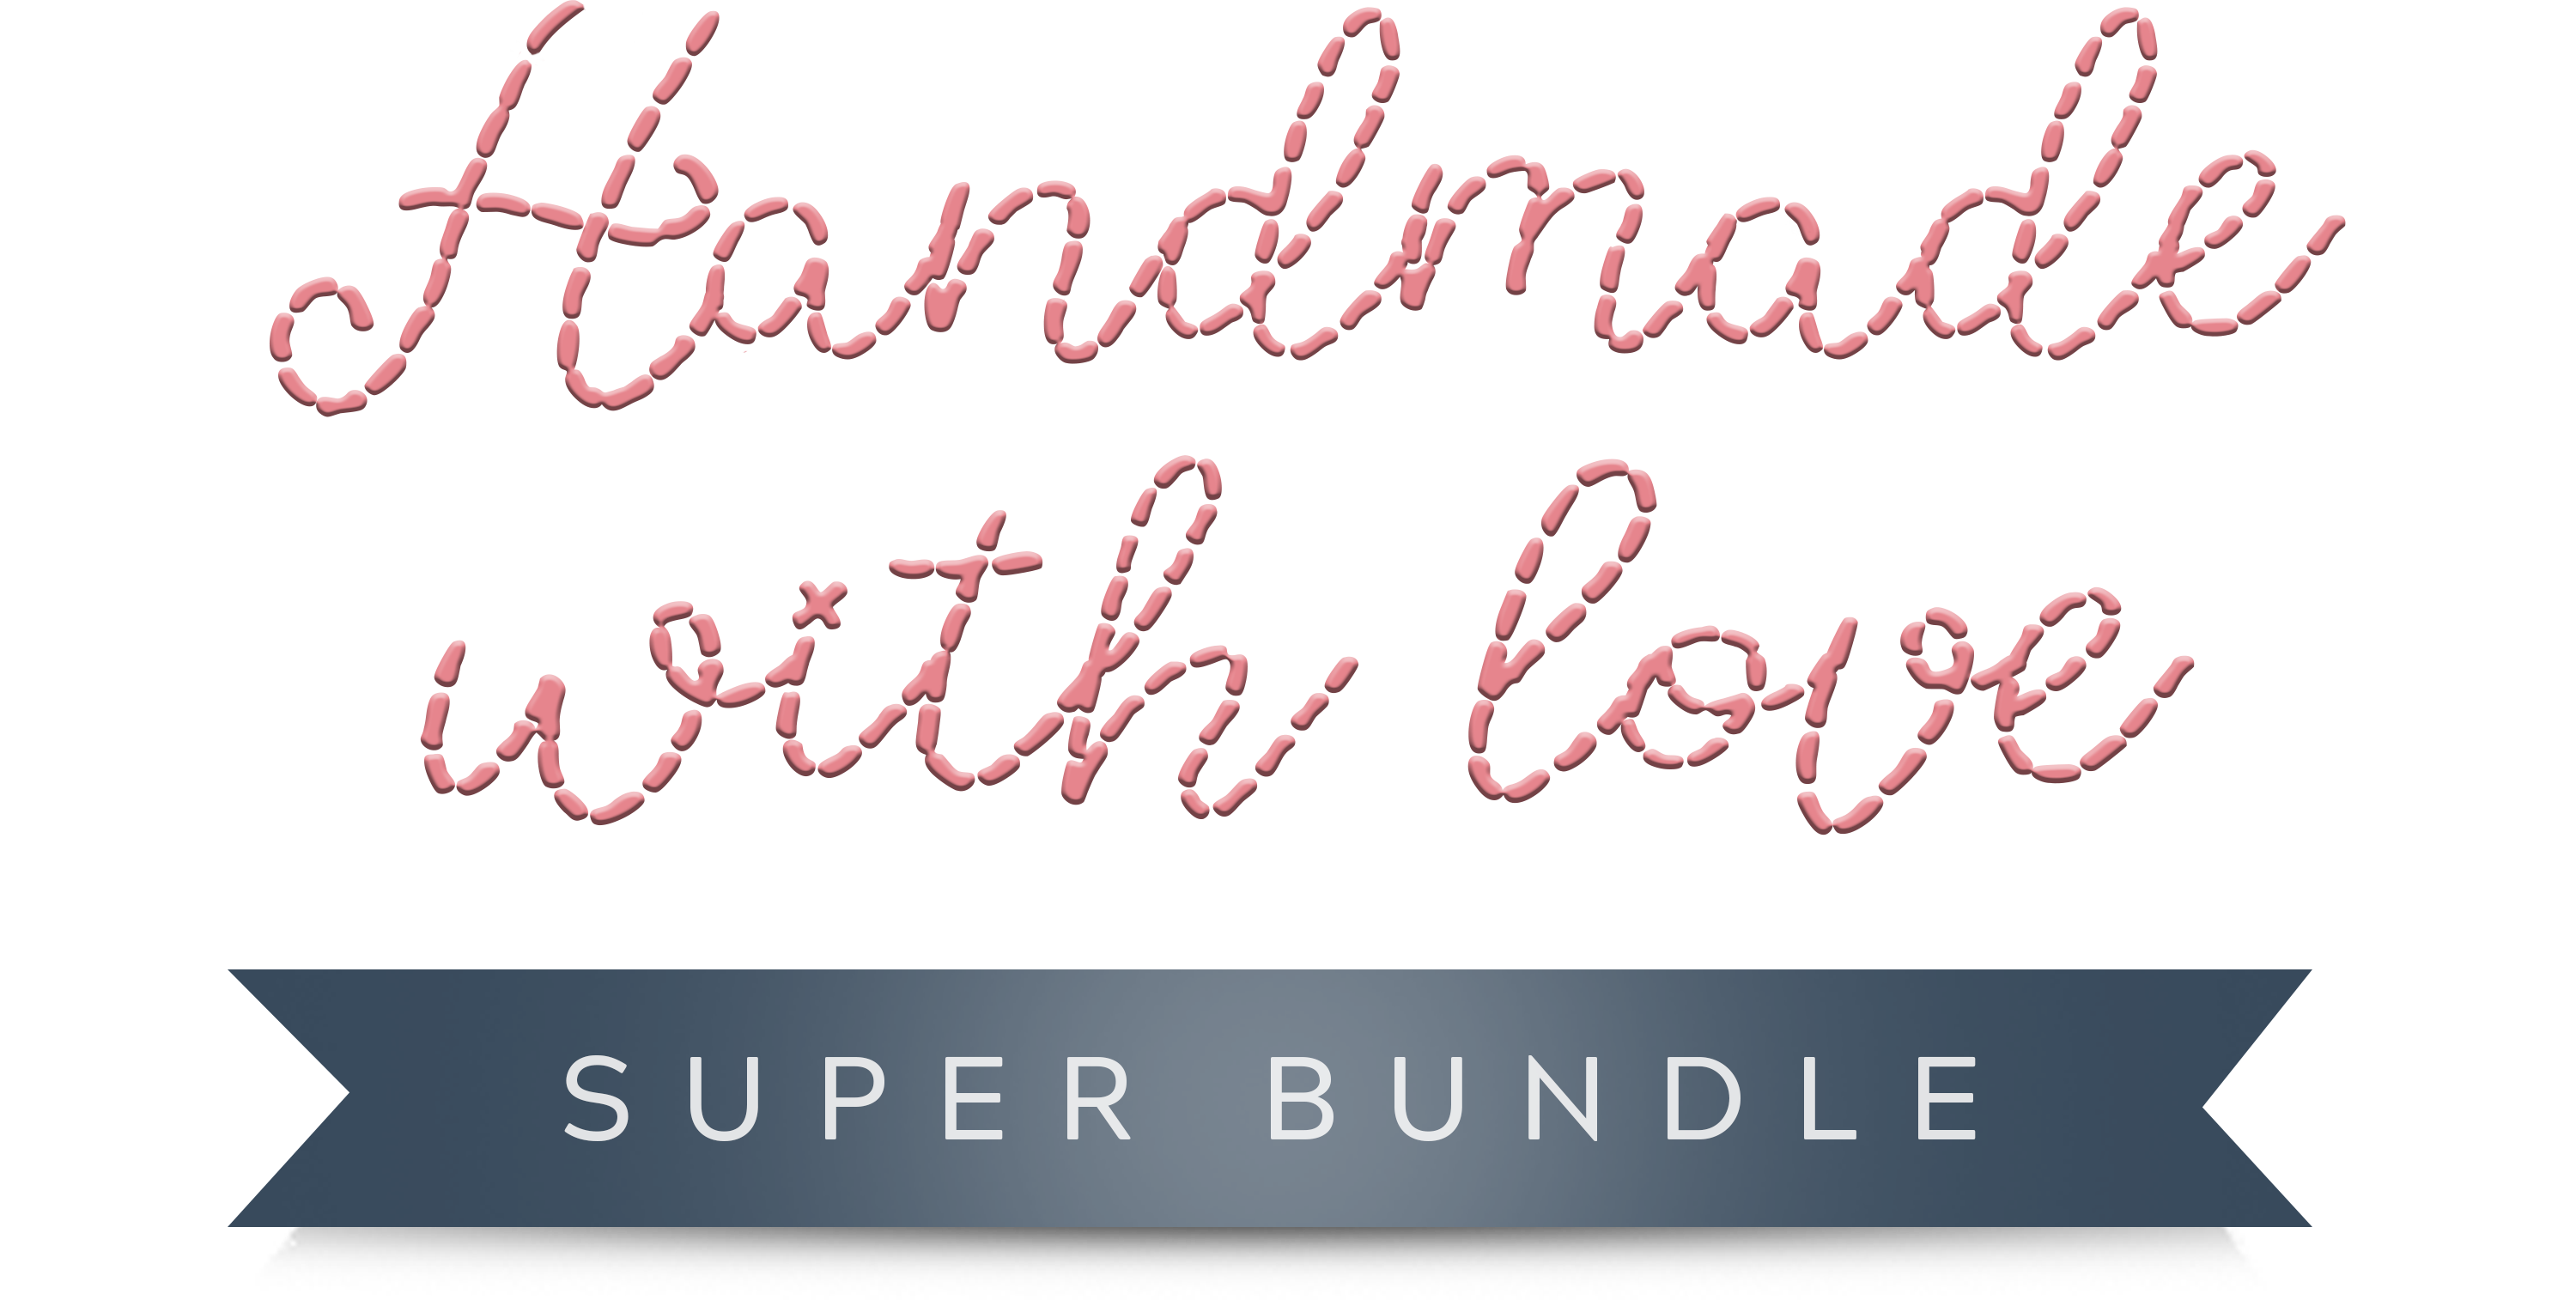 Get the Handmade With Love Super Bundle - over 200 projects and patterns for under £25 (worth over £1000!)